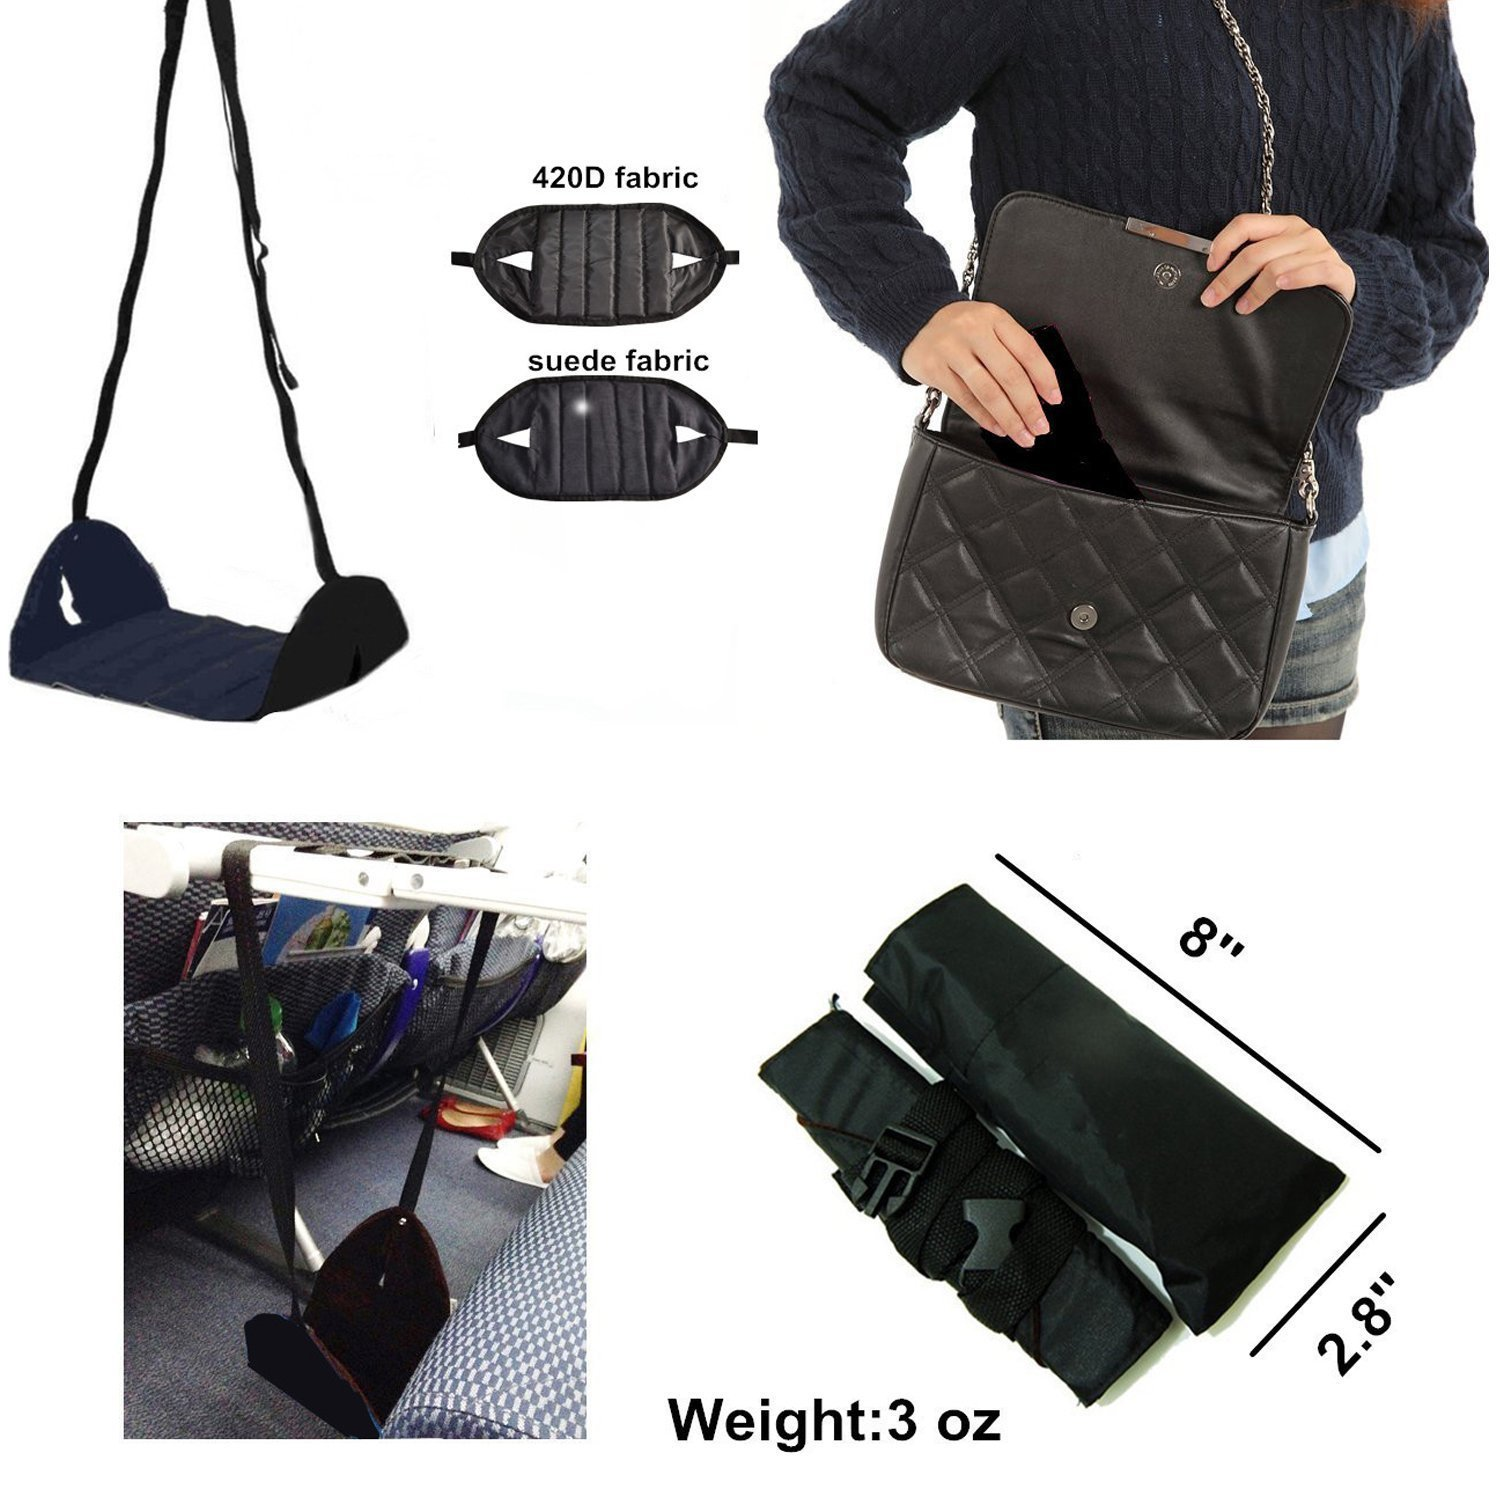 Ohderii Airplane Footrest - Travel Accessories - Portable Foot Rest Flight Carry-On Feet Rest Office Feet Rest Adjustable Under Desk Foot Hammock, Tested and Proven to Prevent Swelling and Soreness by ohderii (Image #5)